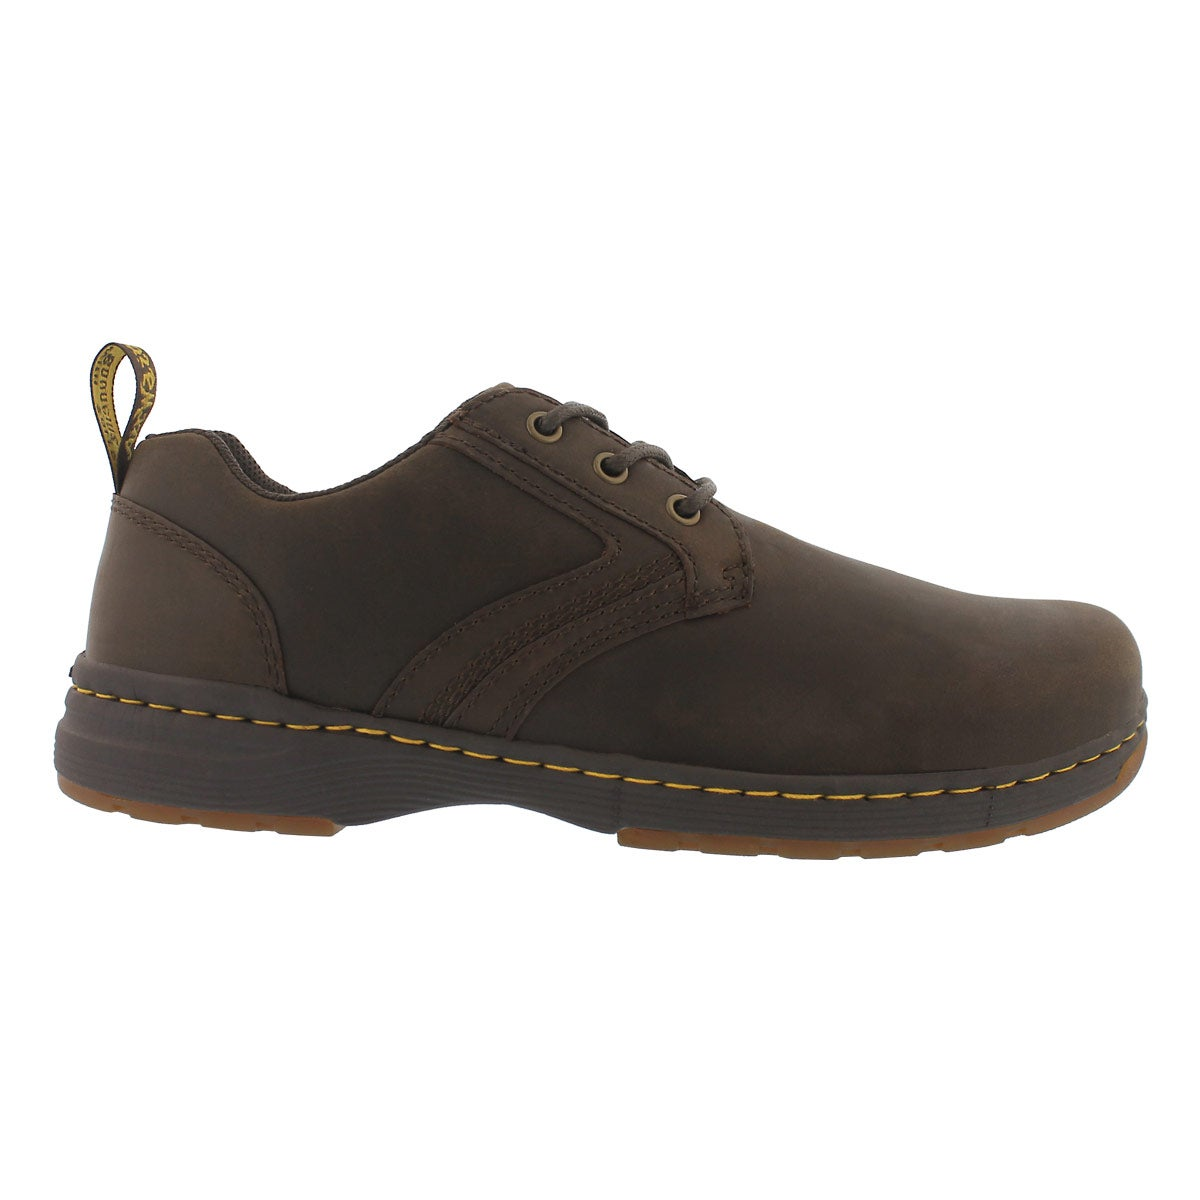 Mns Gilmer brn laceup casual oxford